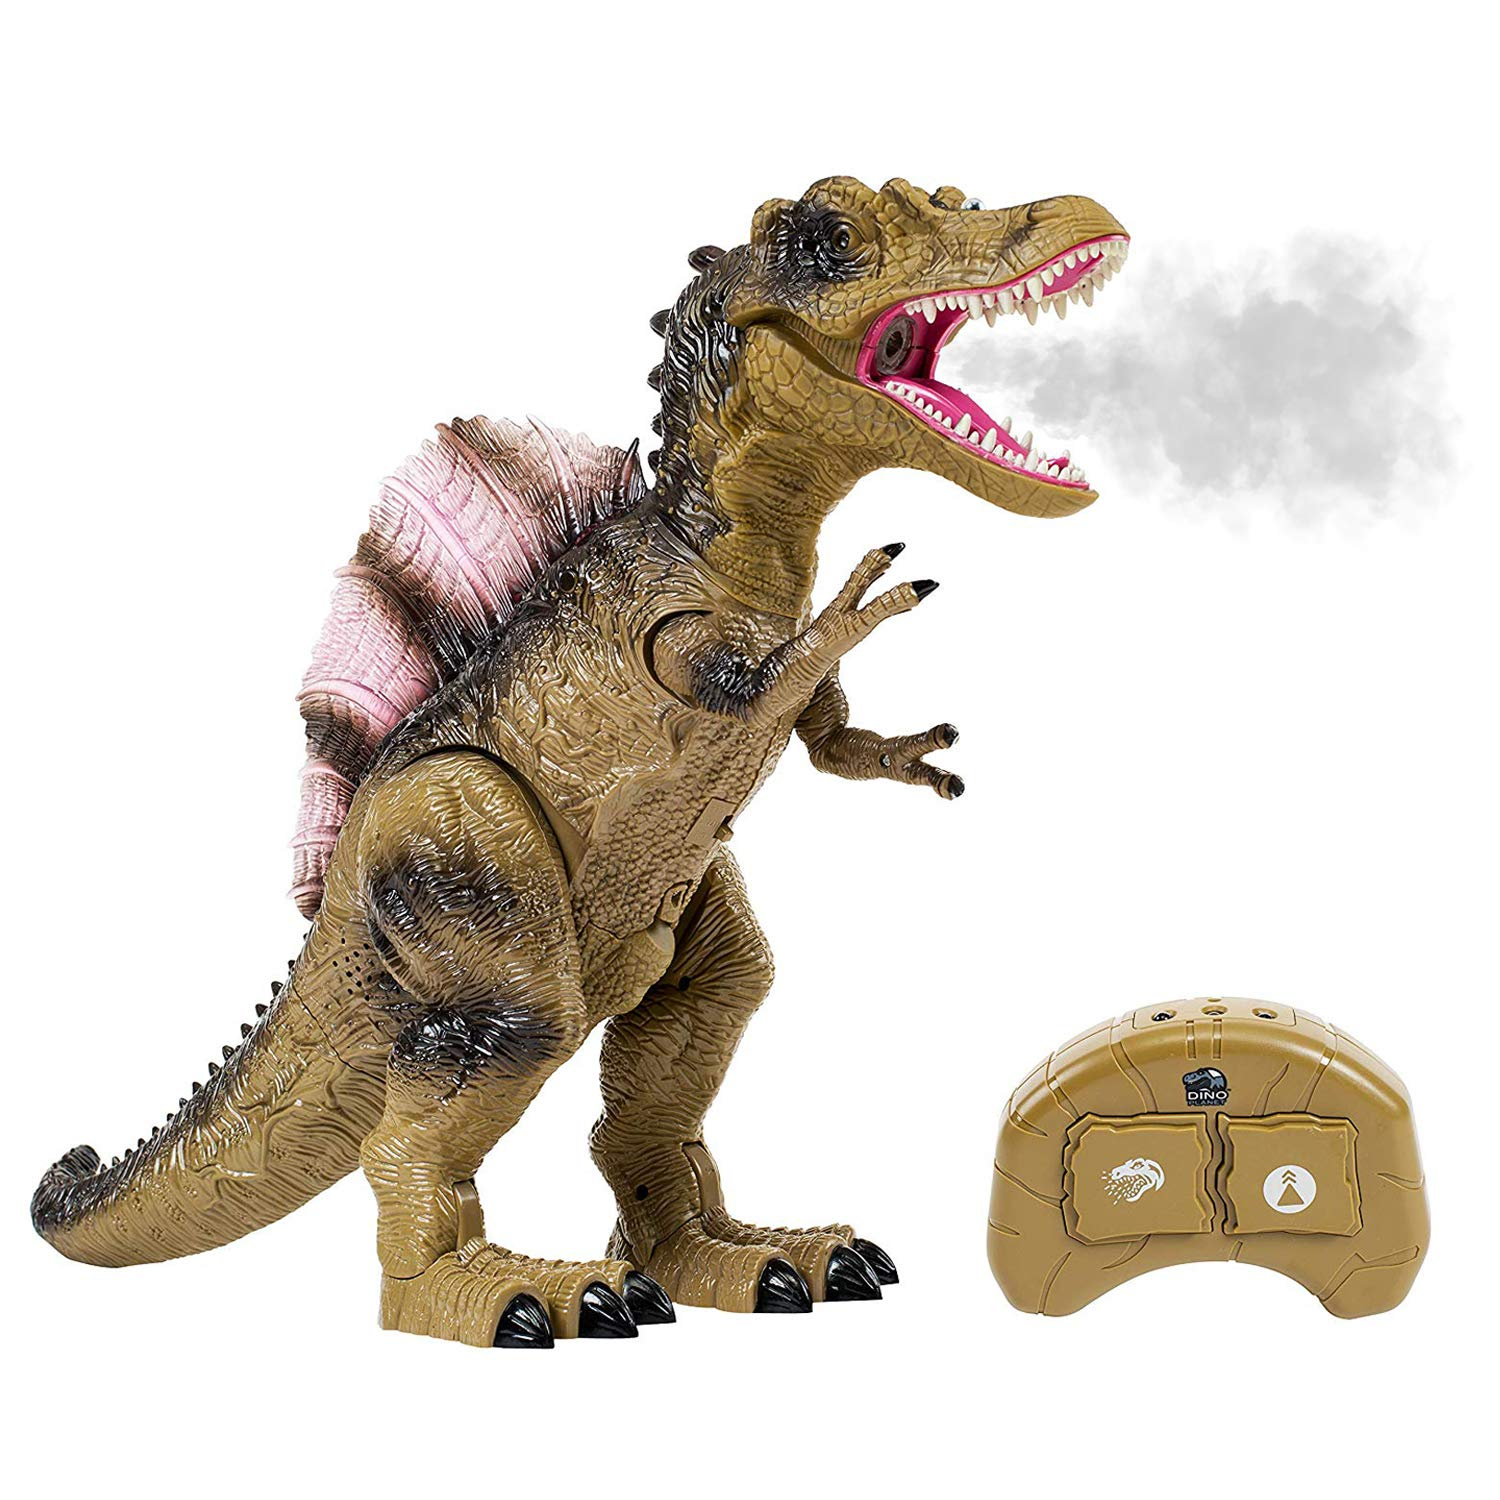 Build Me Remote Control Dinosaur Toy for Kids with Roaring Sounds and Smoking Breath. RC Spinosaurus Dino with Glowing Eyes, Walking Movement, Shaking Head. by Build Me (Image #1)